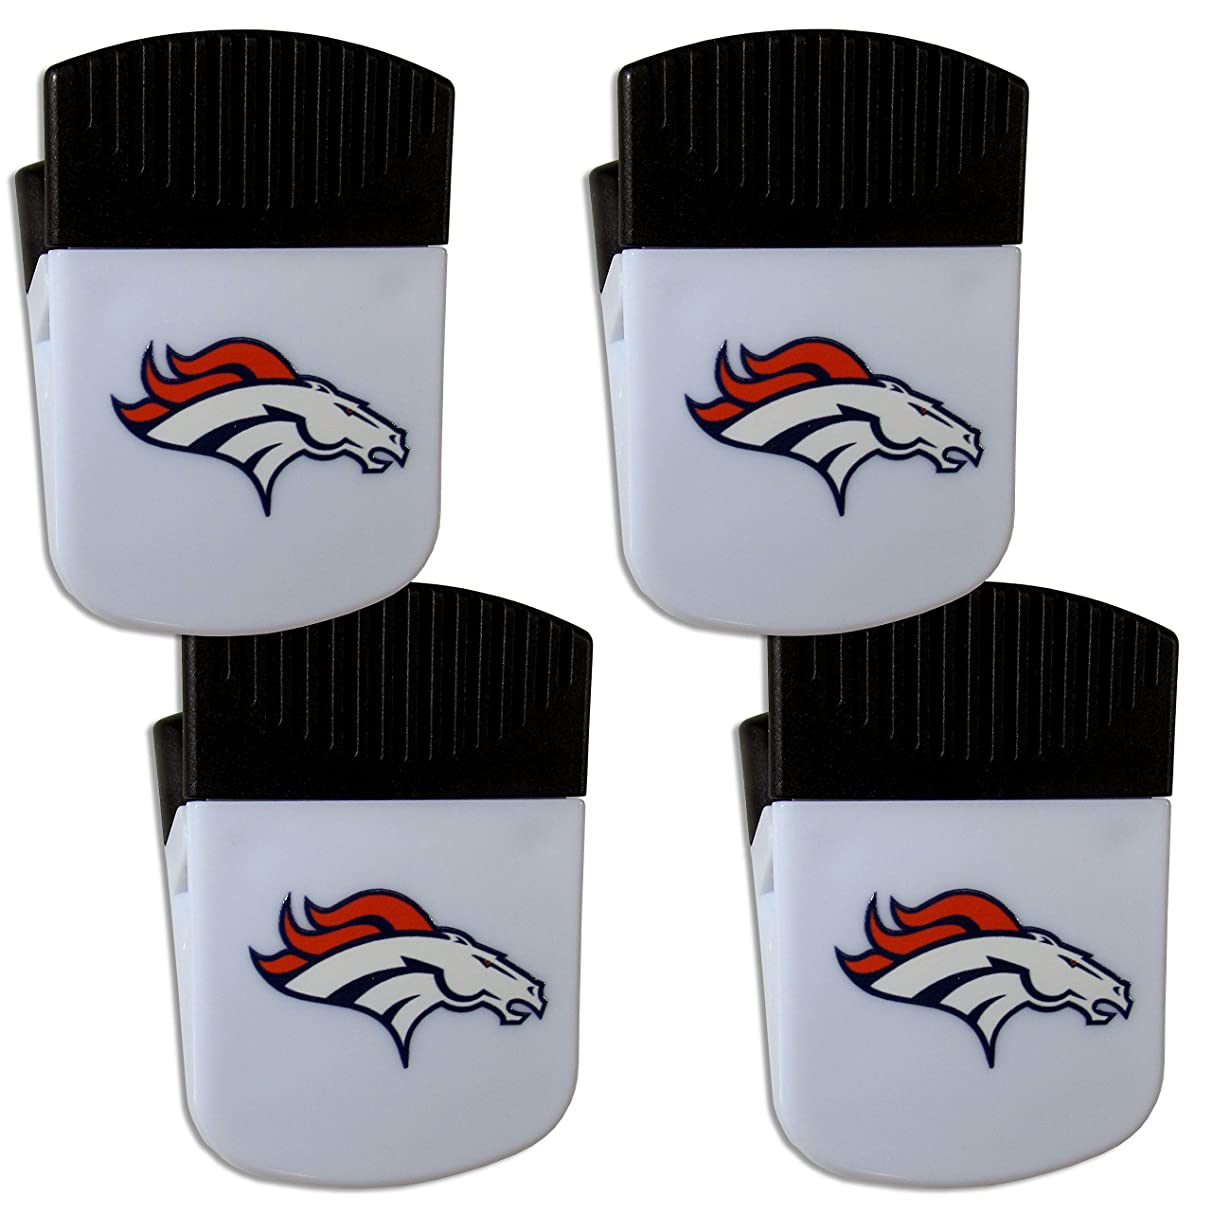 Siskiyou NFL Unisex Chip Clip Magnet with Bottle Opener, 4 Pack